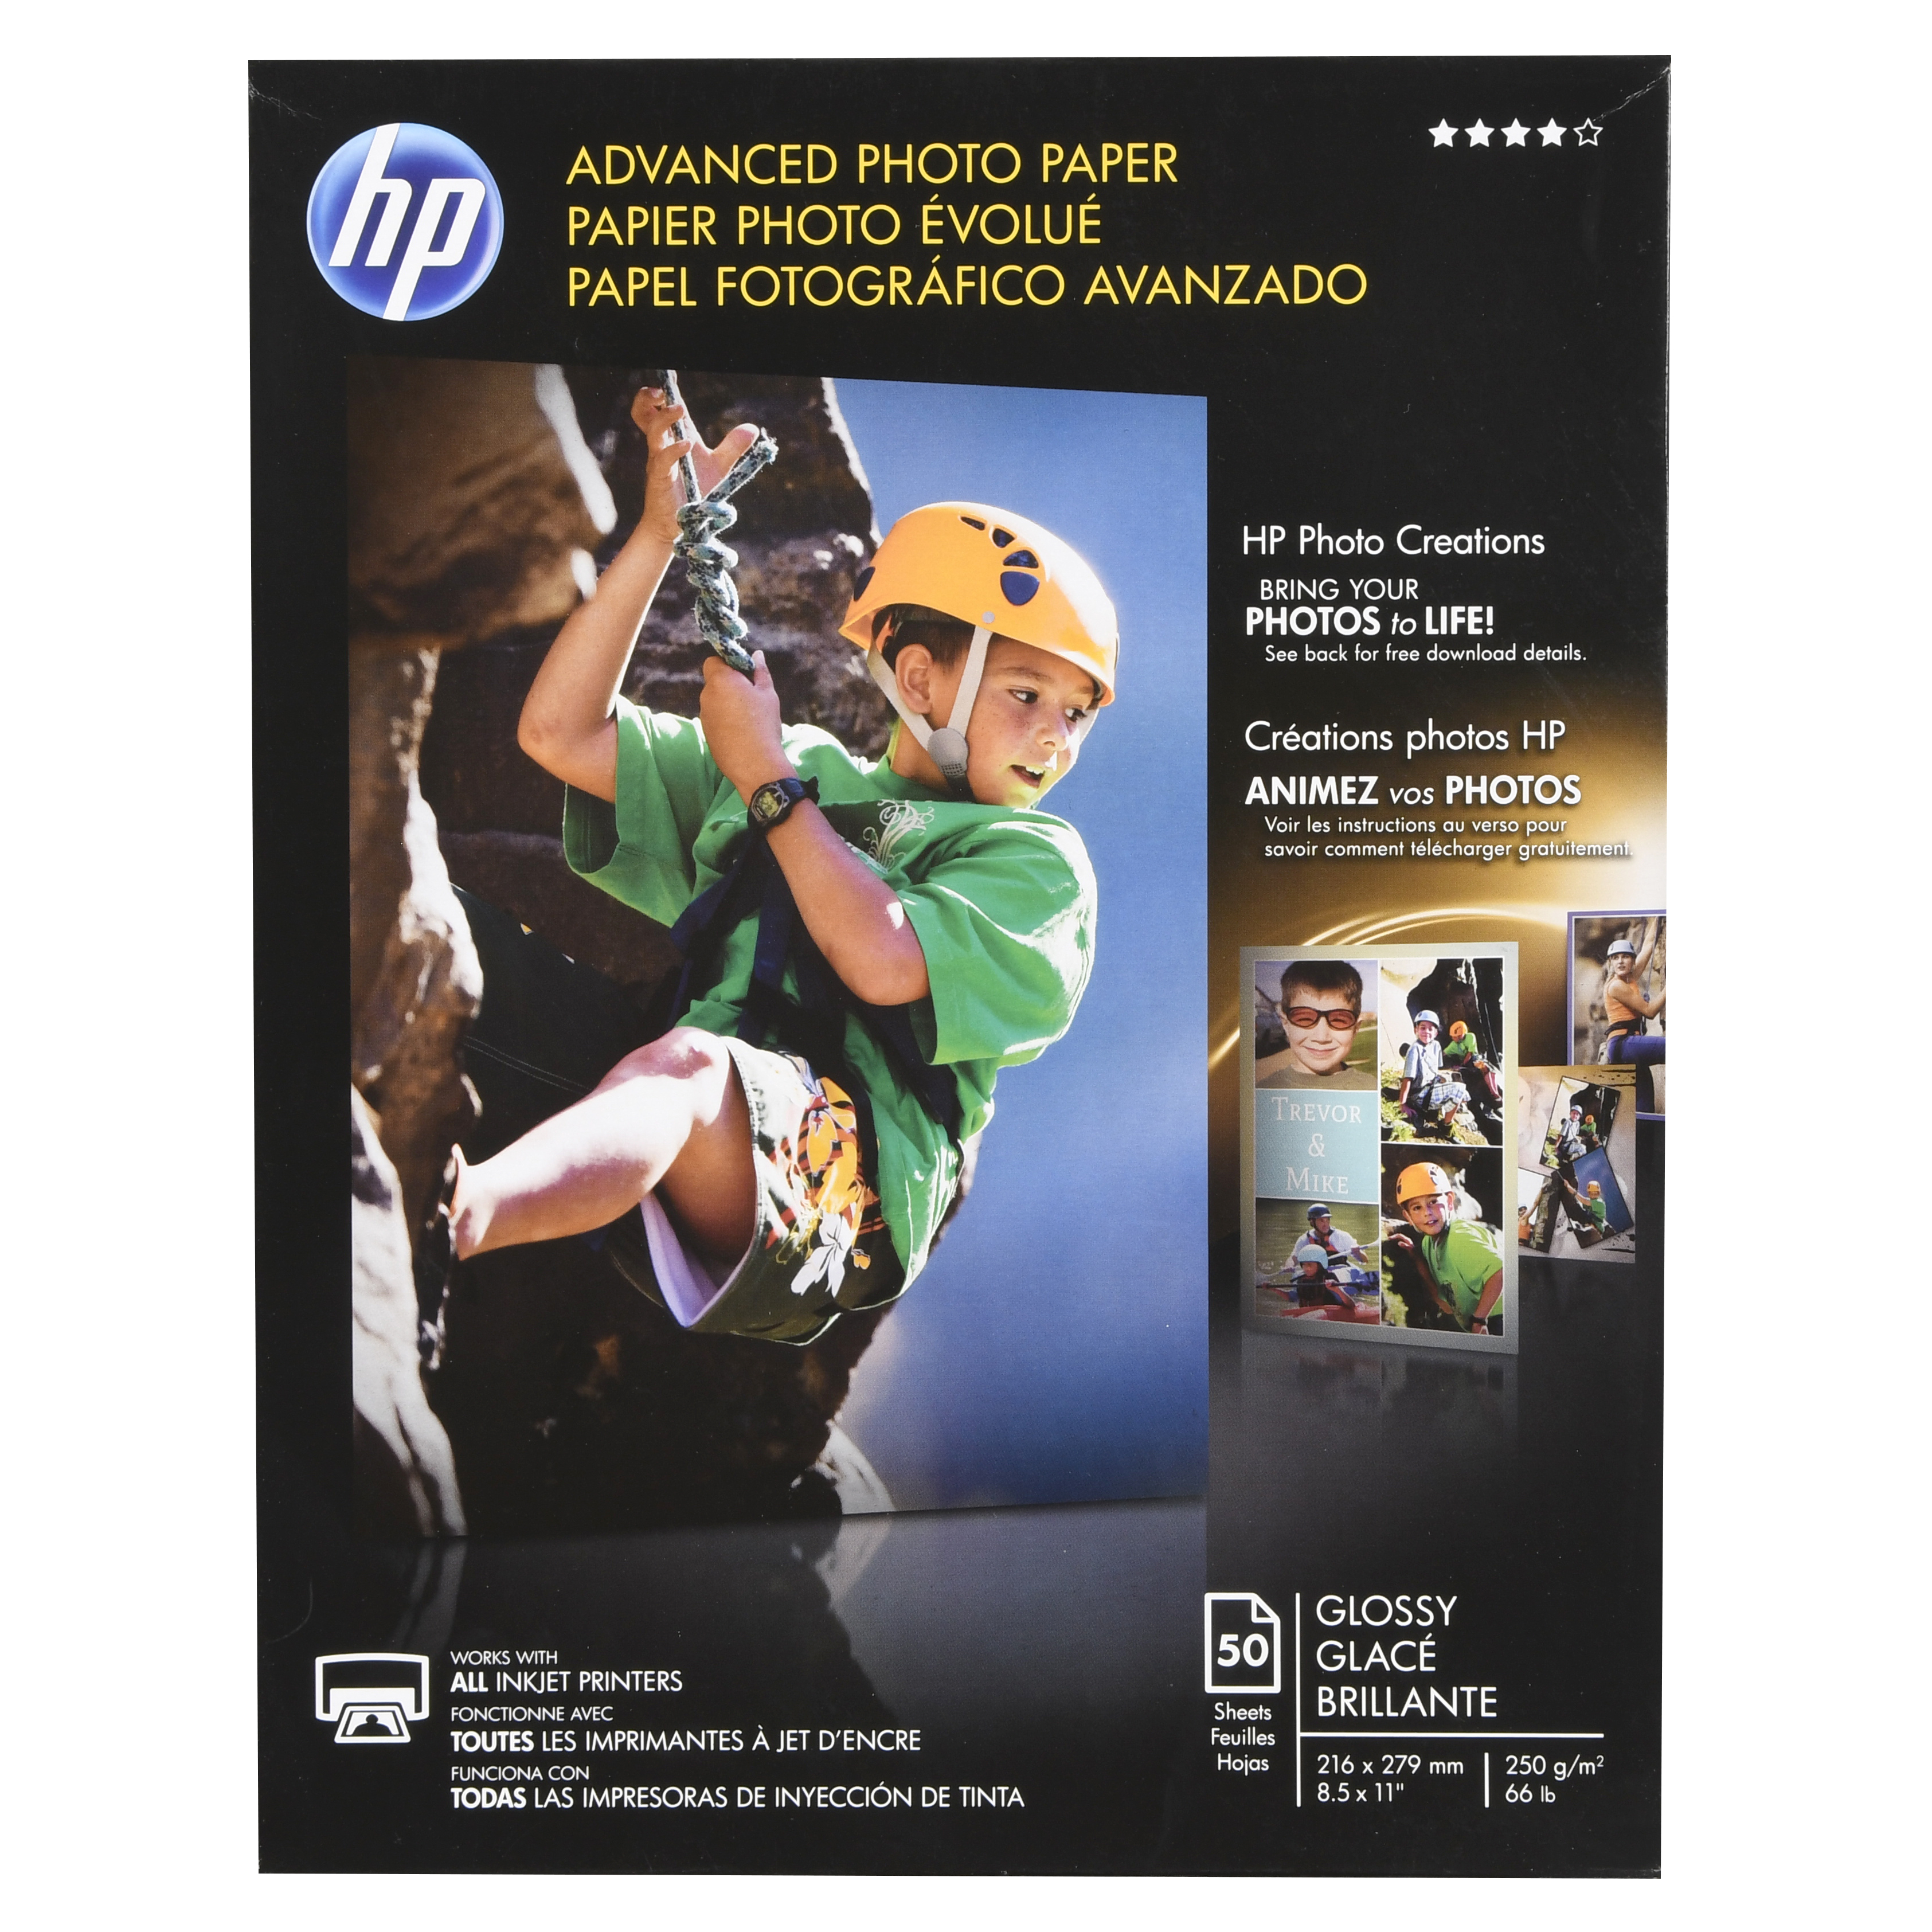 HP Advanced Photo Paper, 56 lbs., Glossy, 8-1/2 x 11, 50 Sheets/Pack -HEWQ7853A